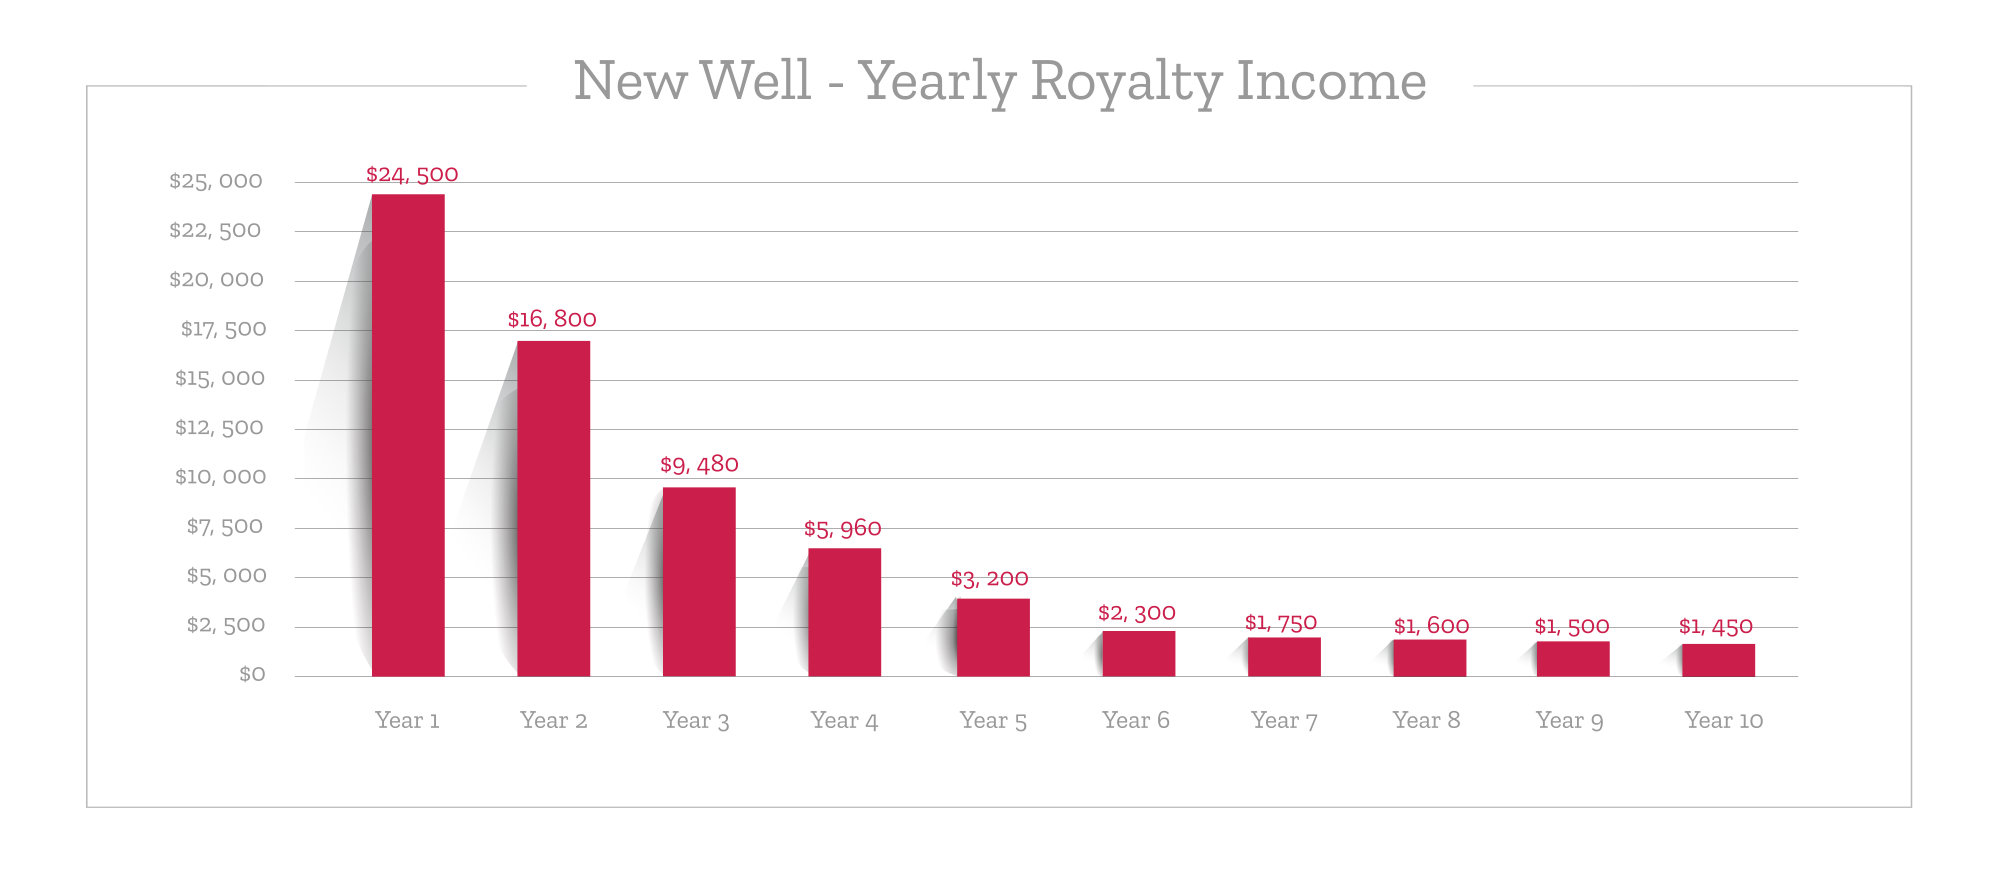 Yearly Royalty Income from New Well